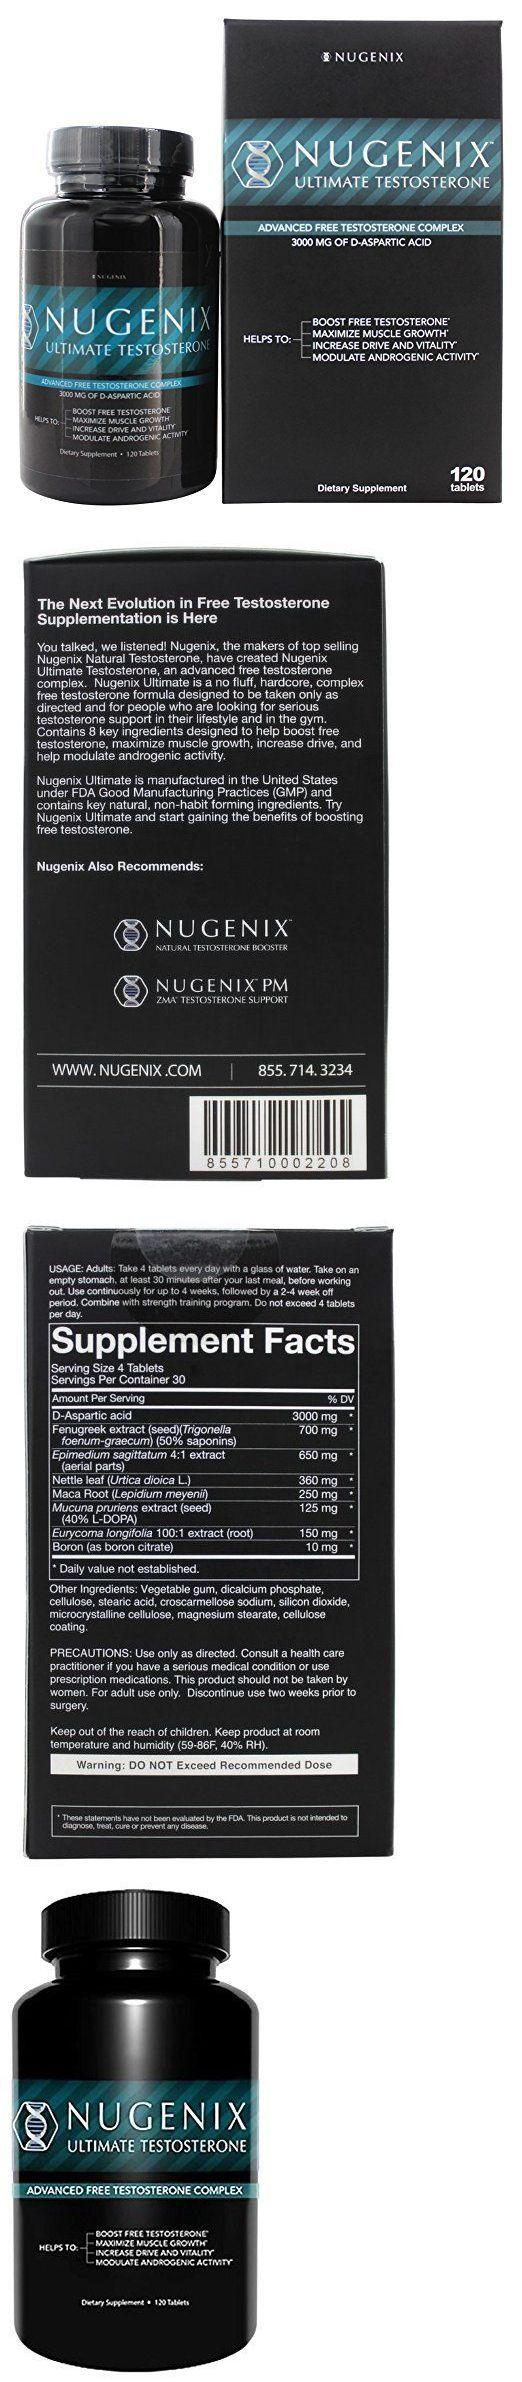 Other Sports Supplements: Nugenix Ultimate Testosterone 120 Tablets - Brand New - Quick Shipping BUY IT NOW ONLY: $59.99